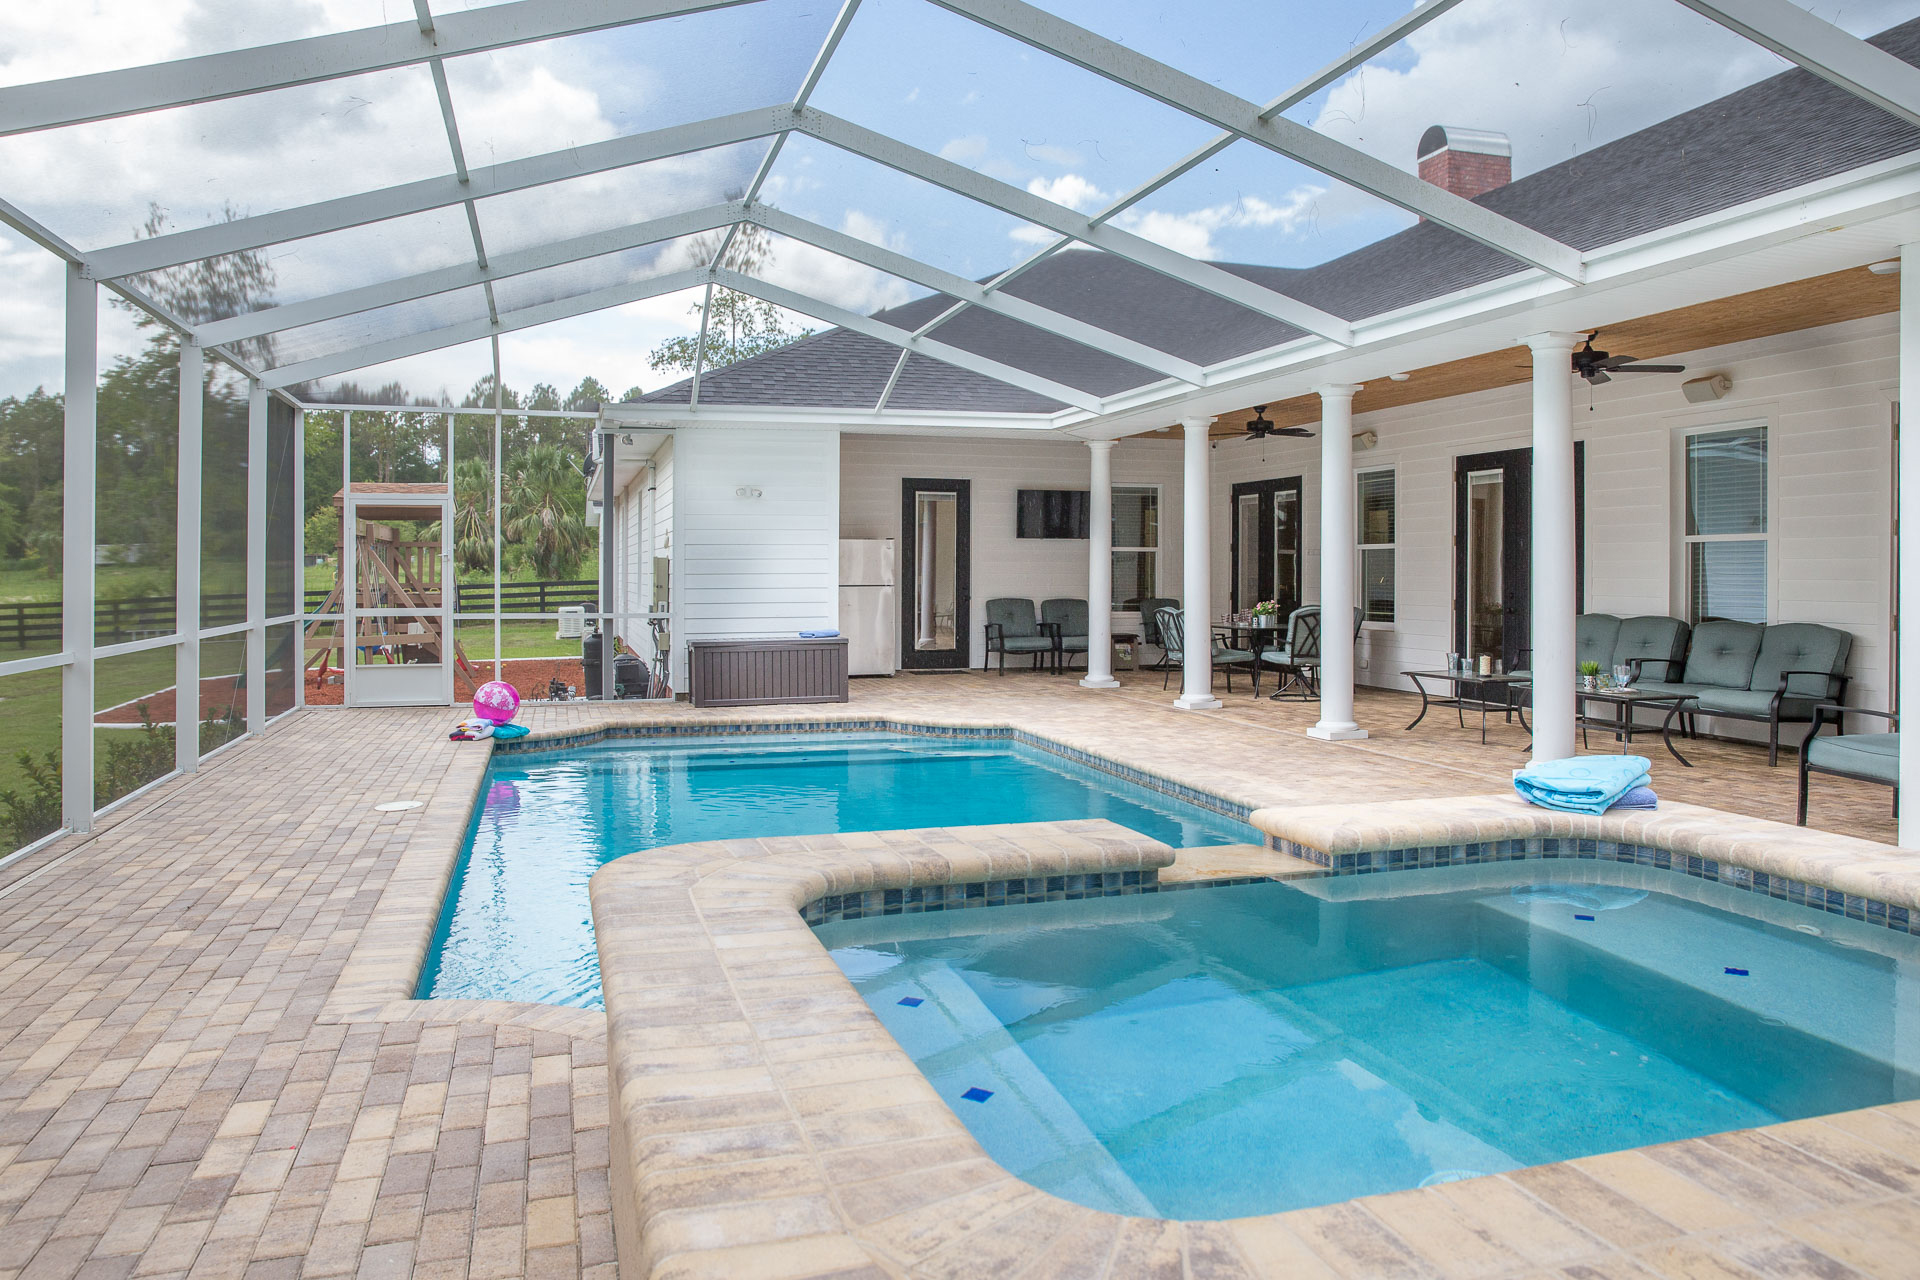 100 pool home swimming pool house designs stun for Virtual pool builder